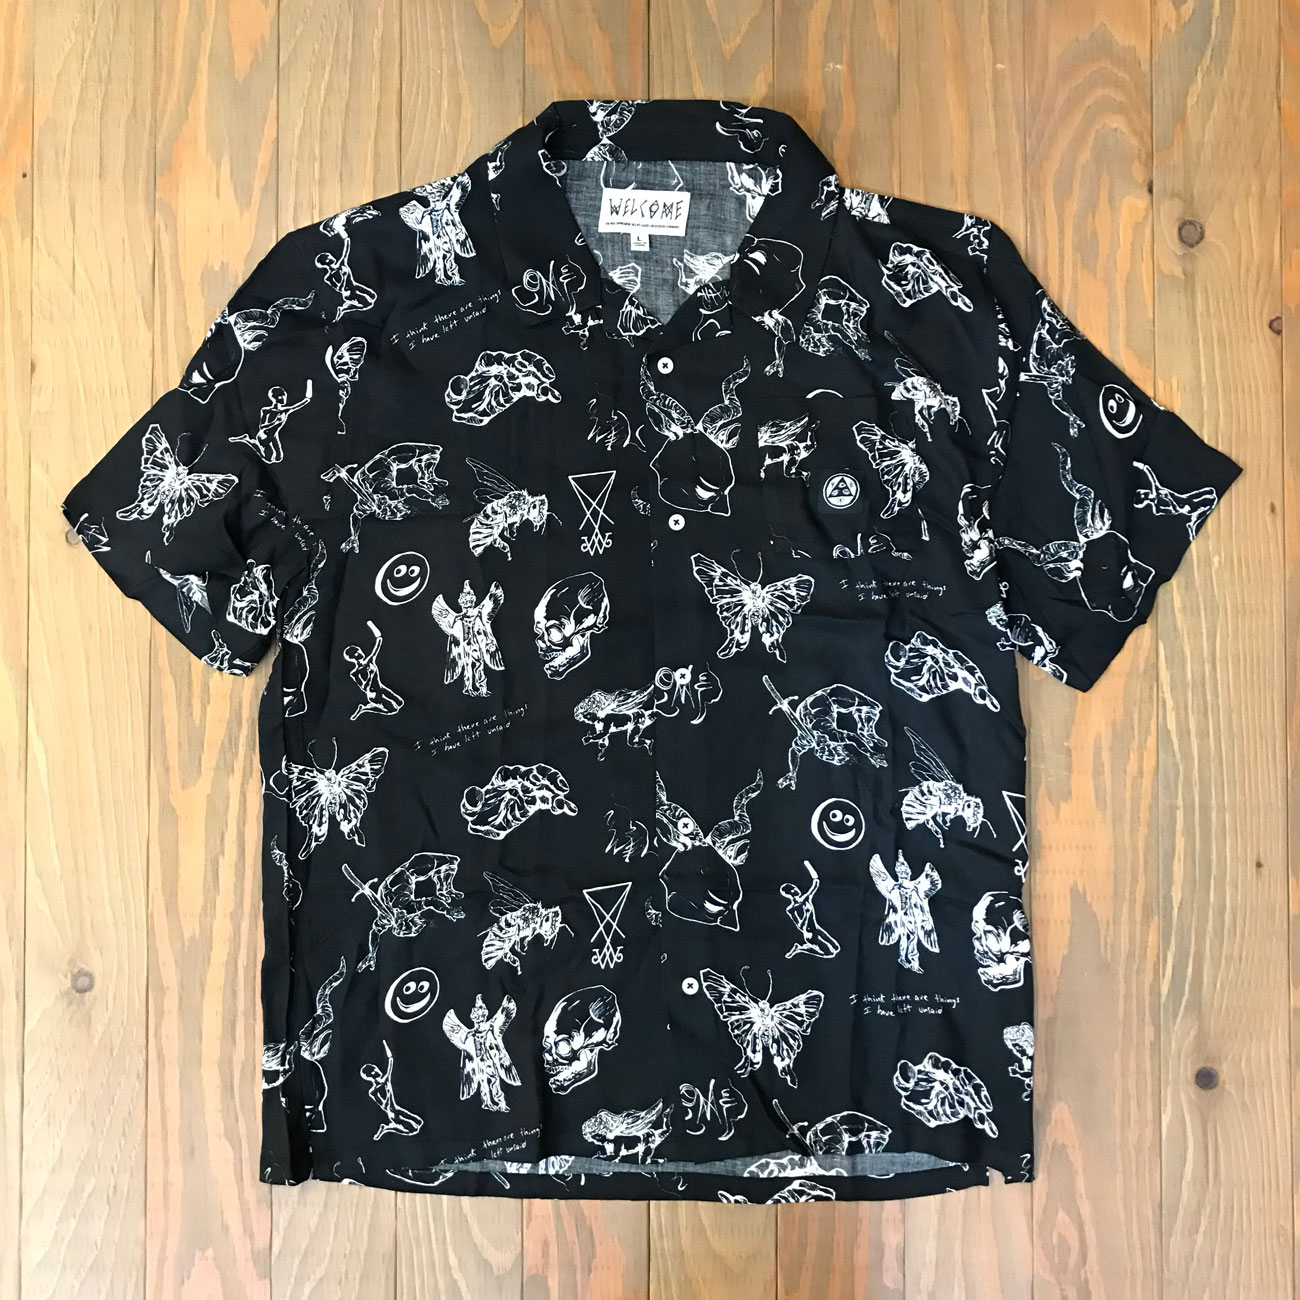 WELCOME EPHEMERA RAYON CAMP SHIRT BLACK